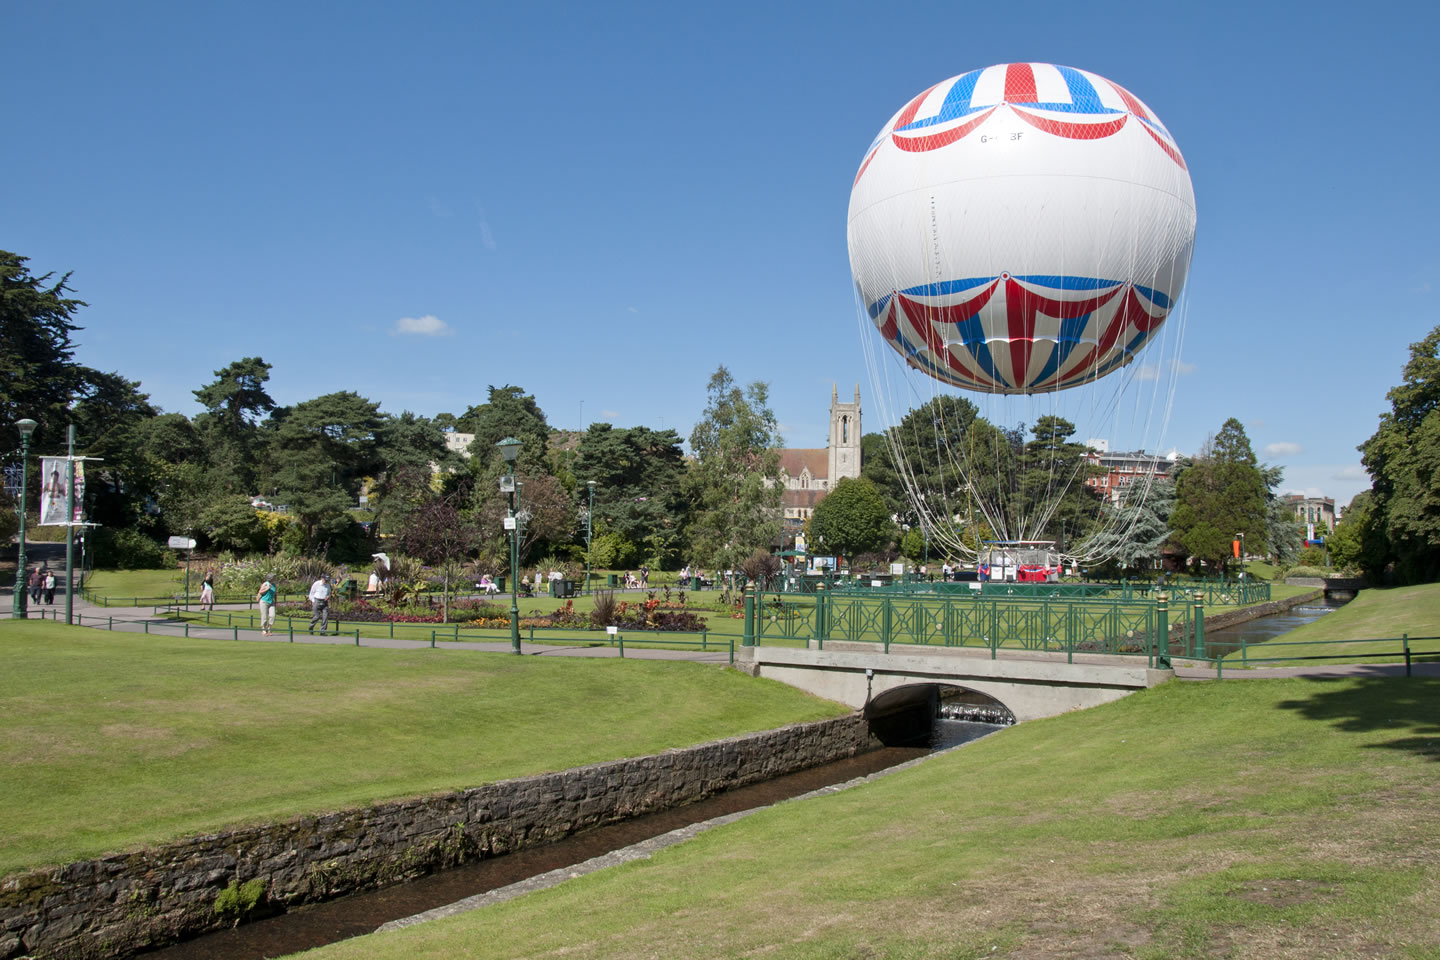 bournemouth-balloon